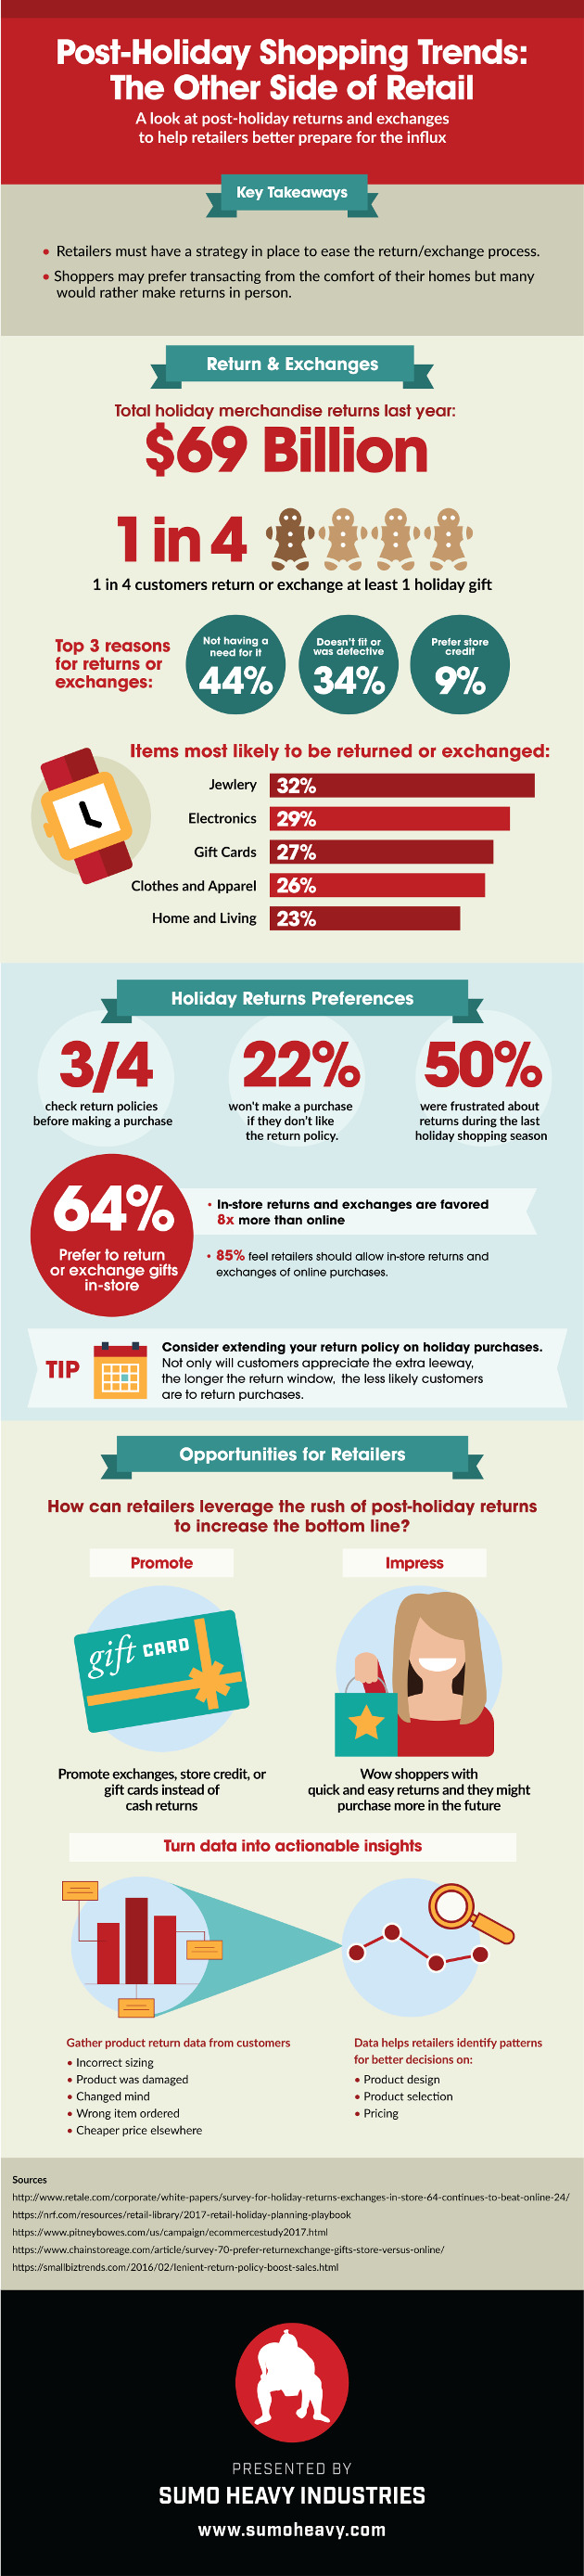 Tips for Return to Training after The Holiday